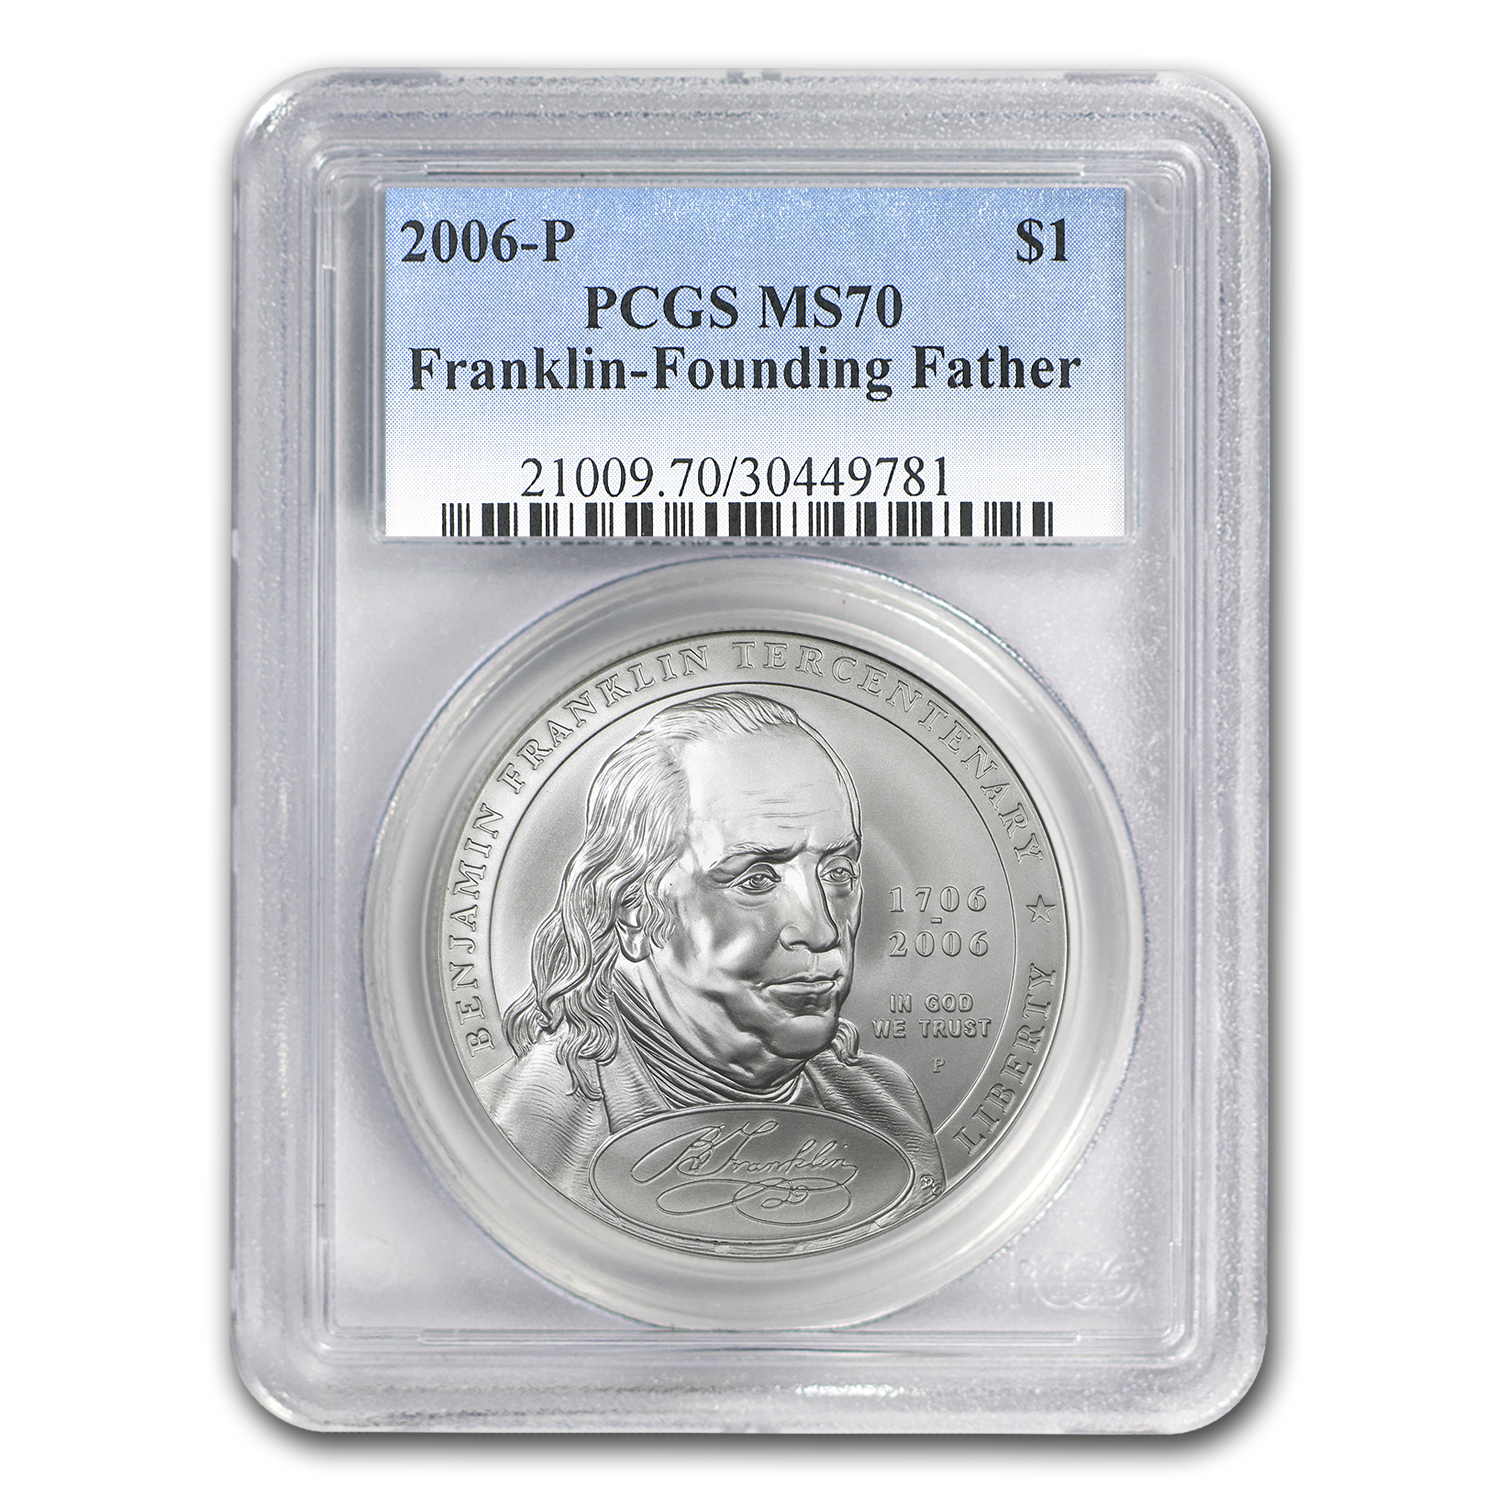 2006-P Ben Franklin Founding Father $1 Silver Commem MS-70 PCGS